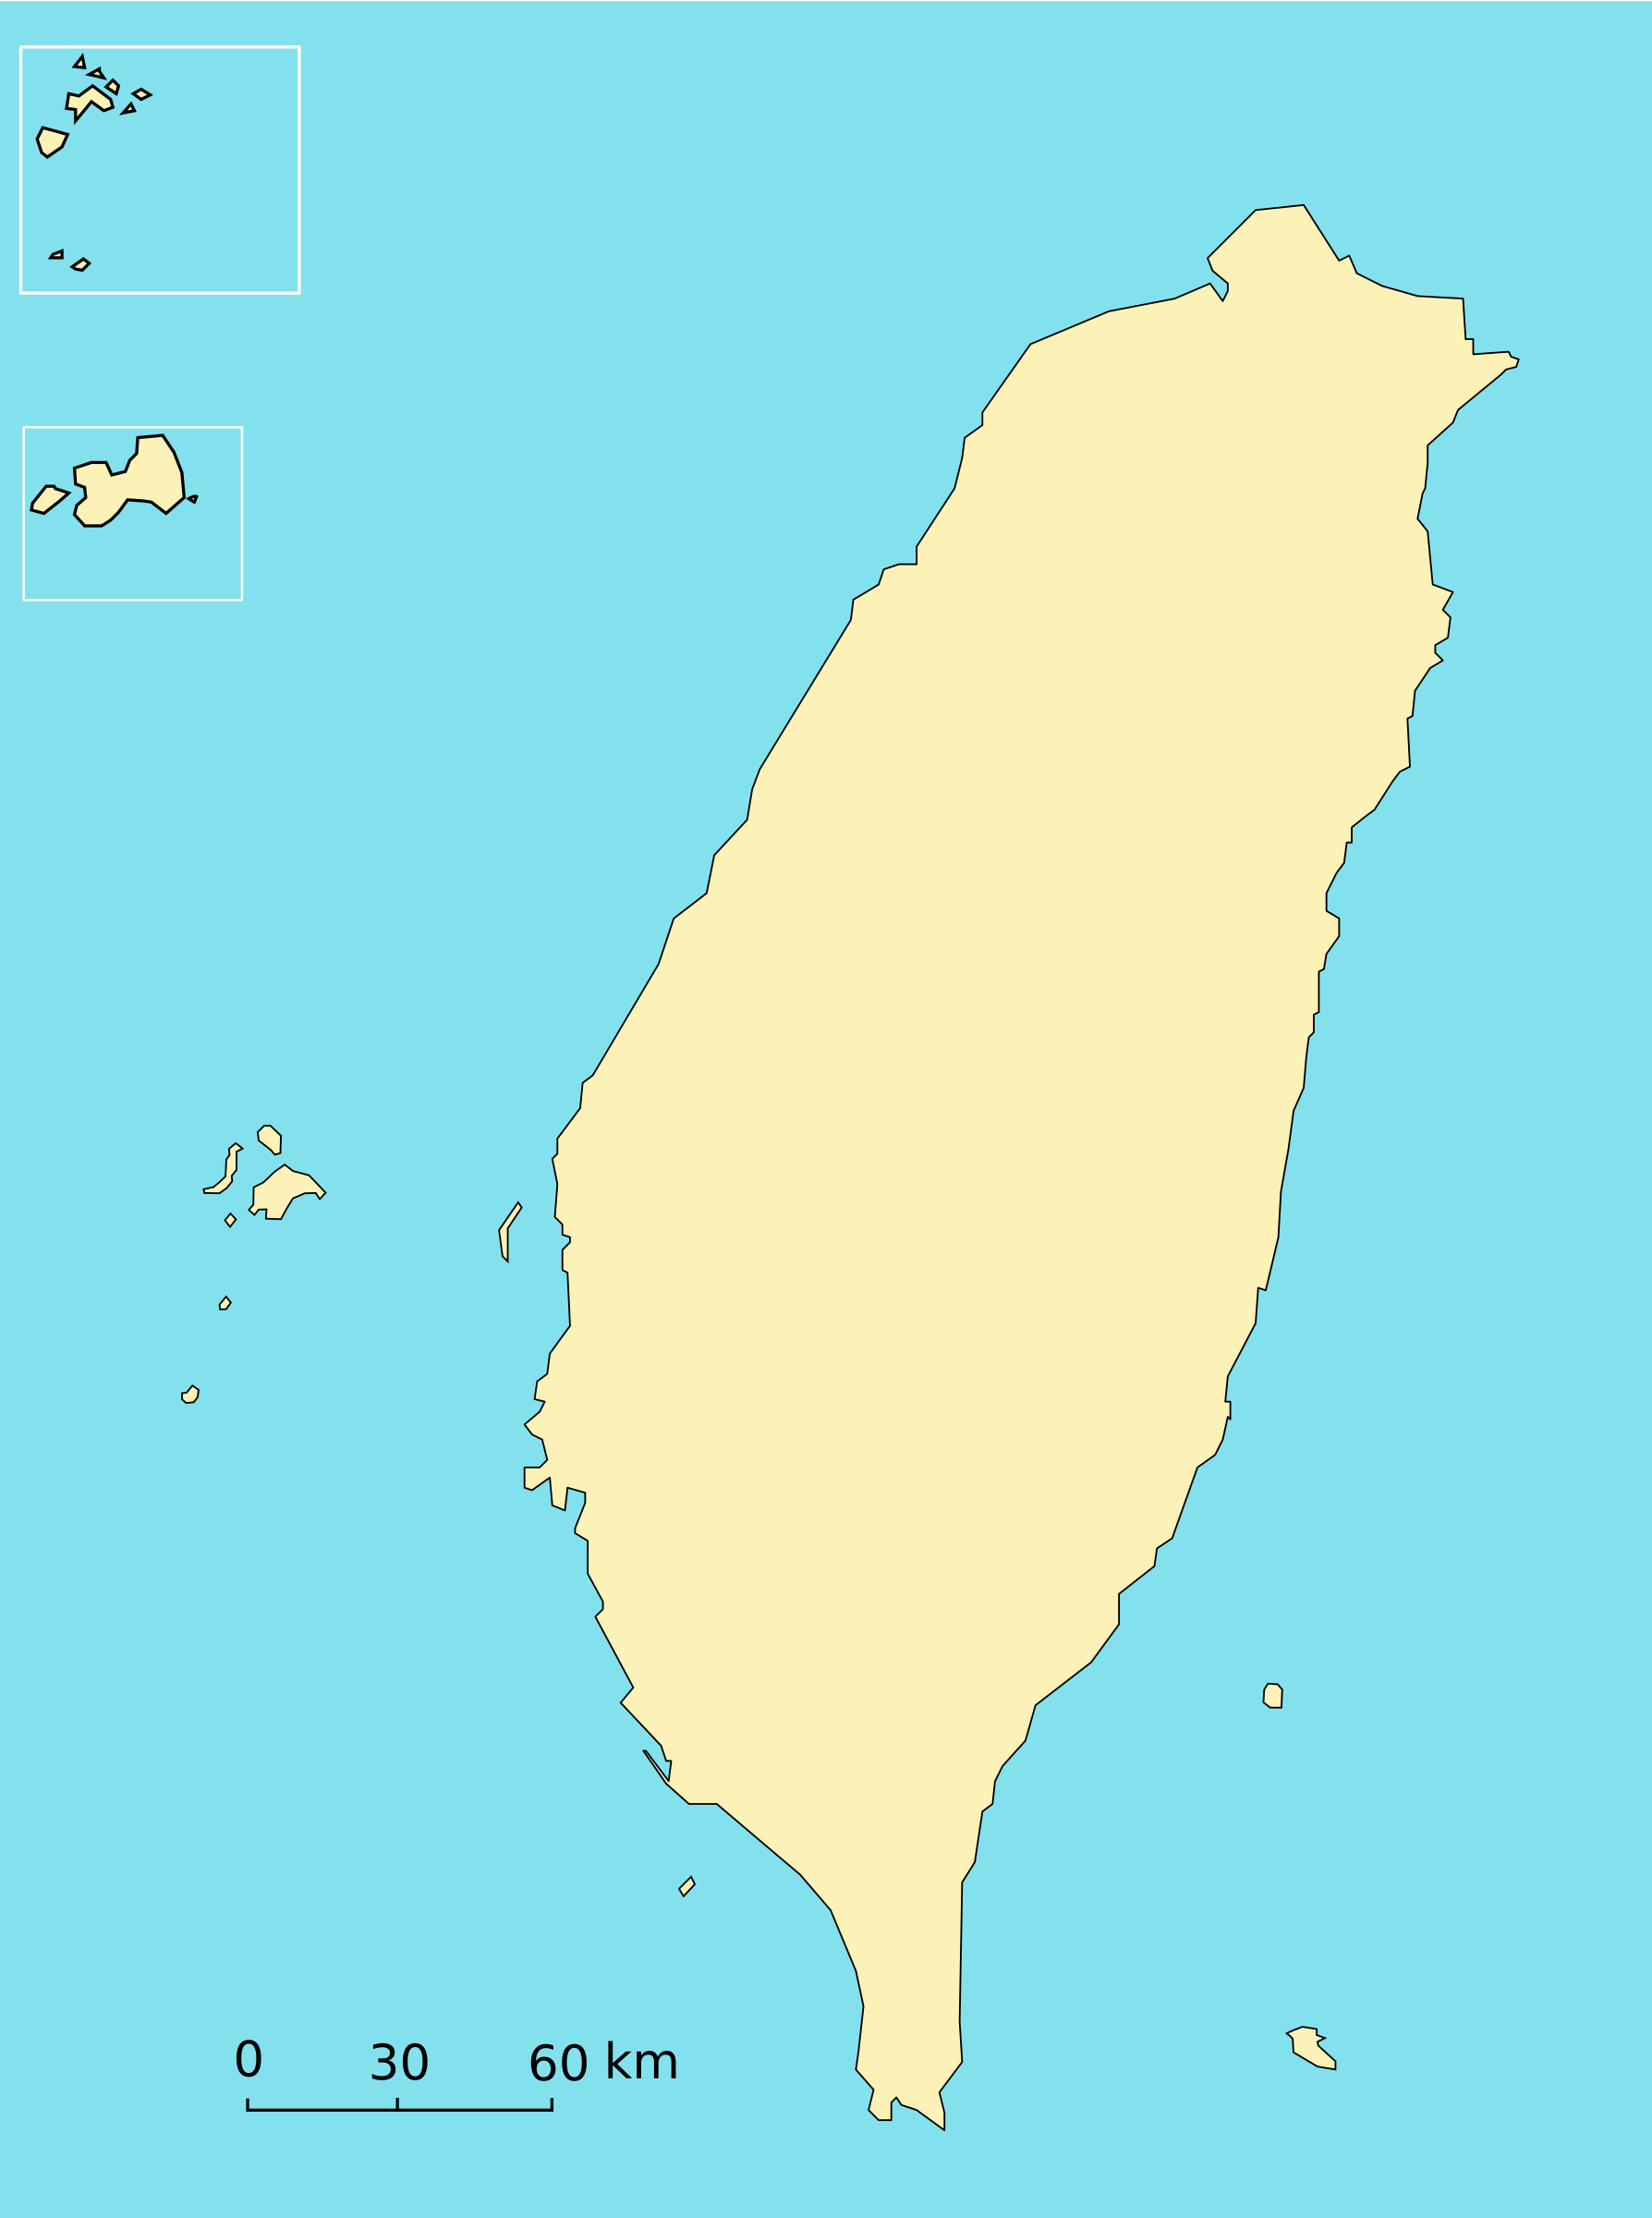 Taiwan Map by antontw